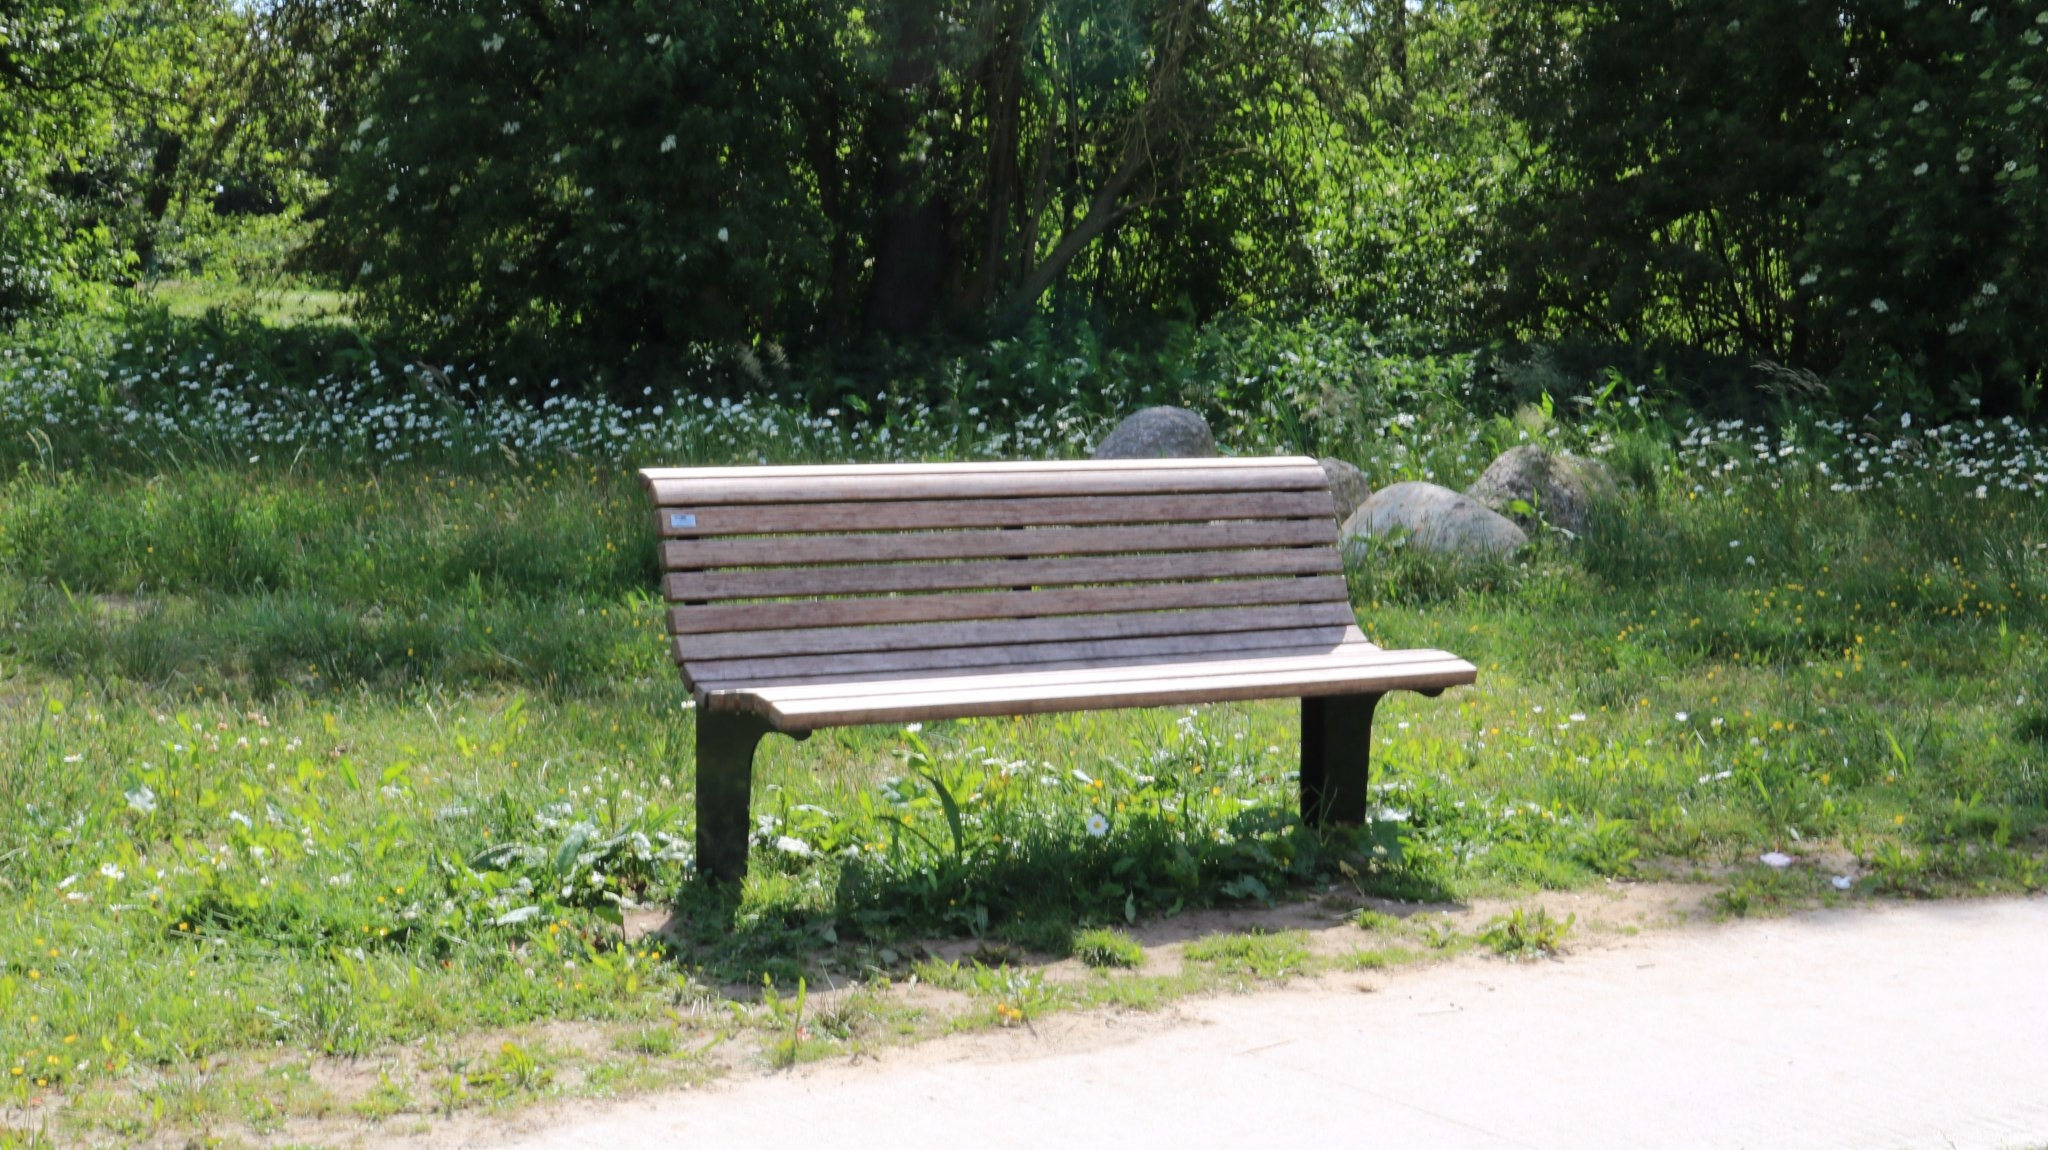 rt-gertientje-this-bench-spotted-in-beilen-walking benches-httpst-cogolgidxqqp